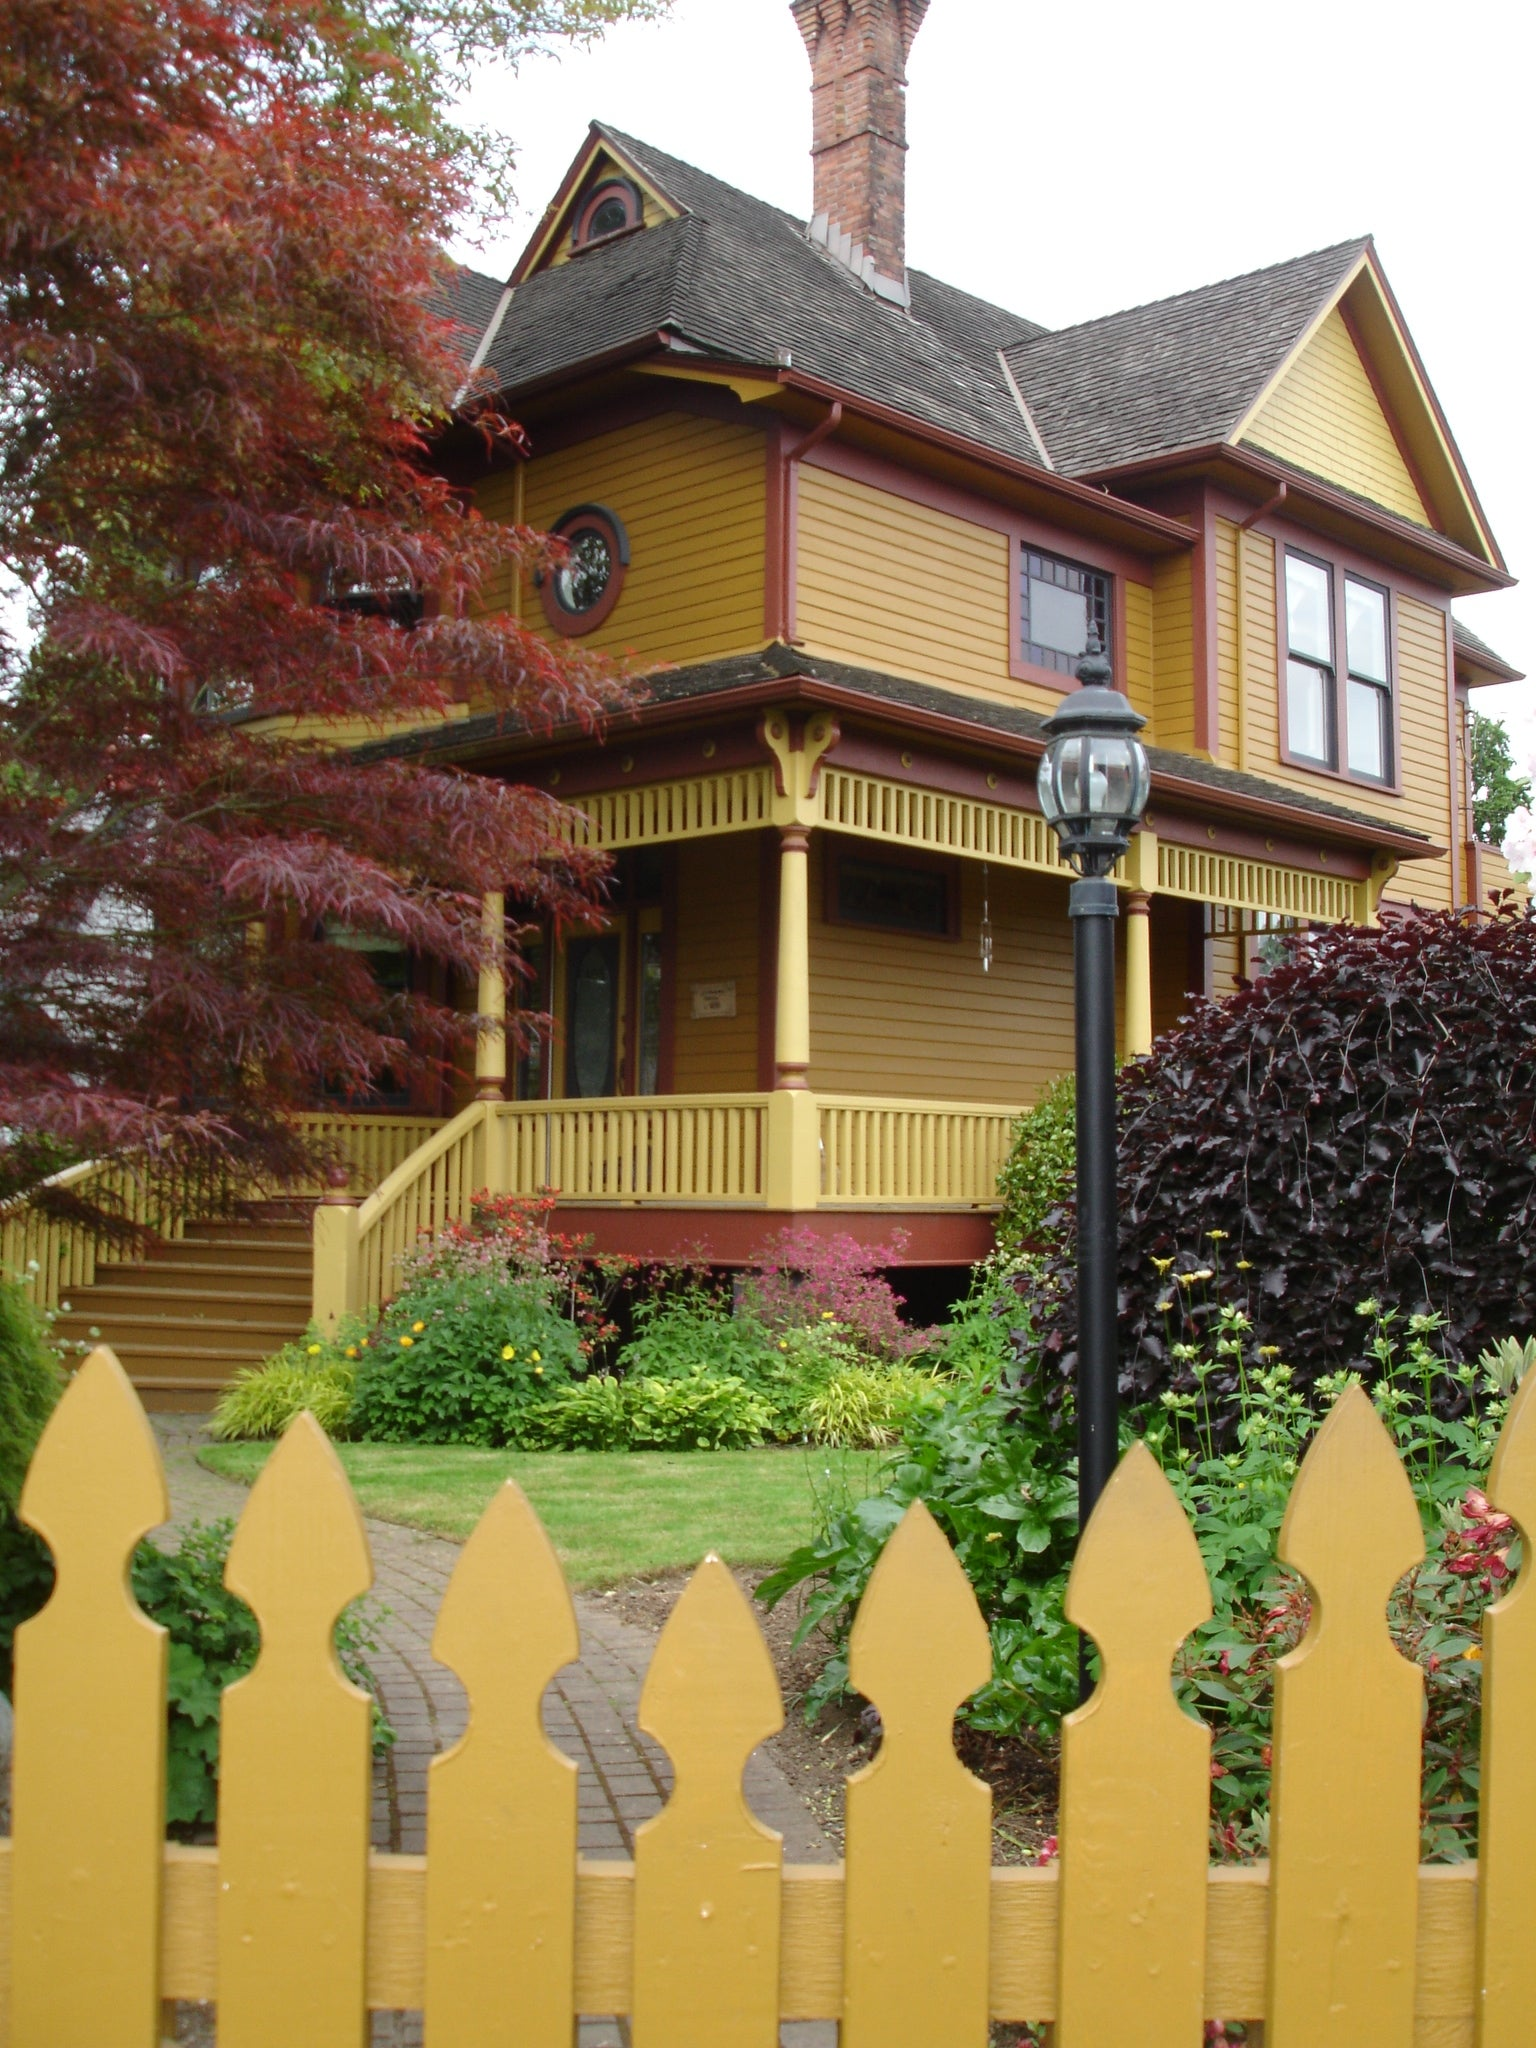 Beautiful Heritage house in the Queen's Park district of New Westminster BC